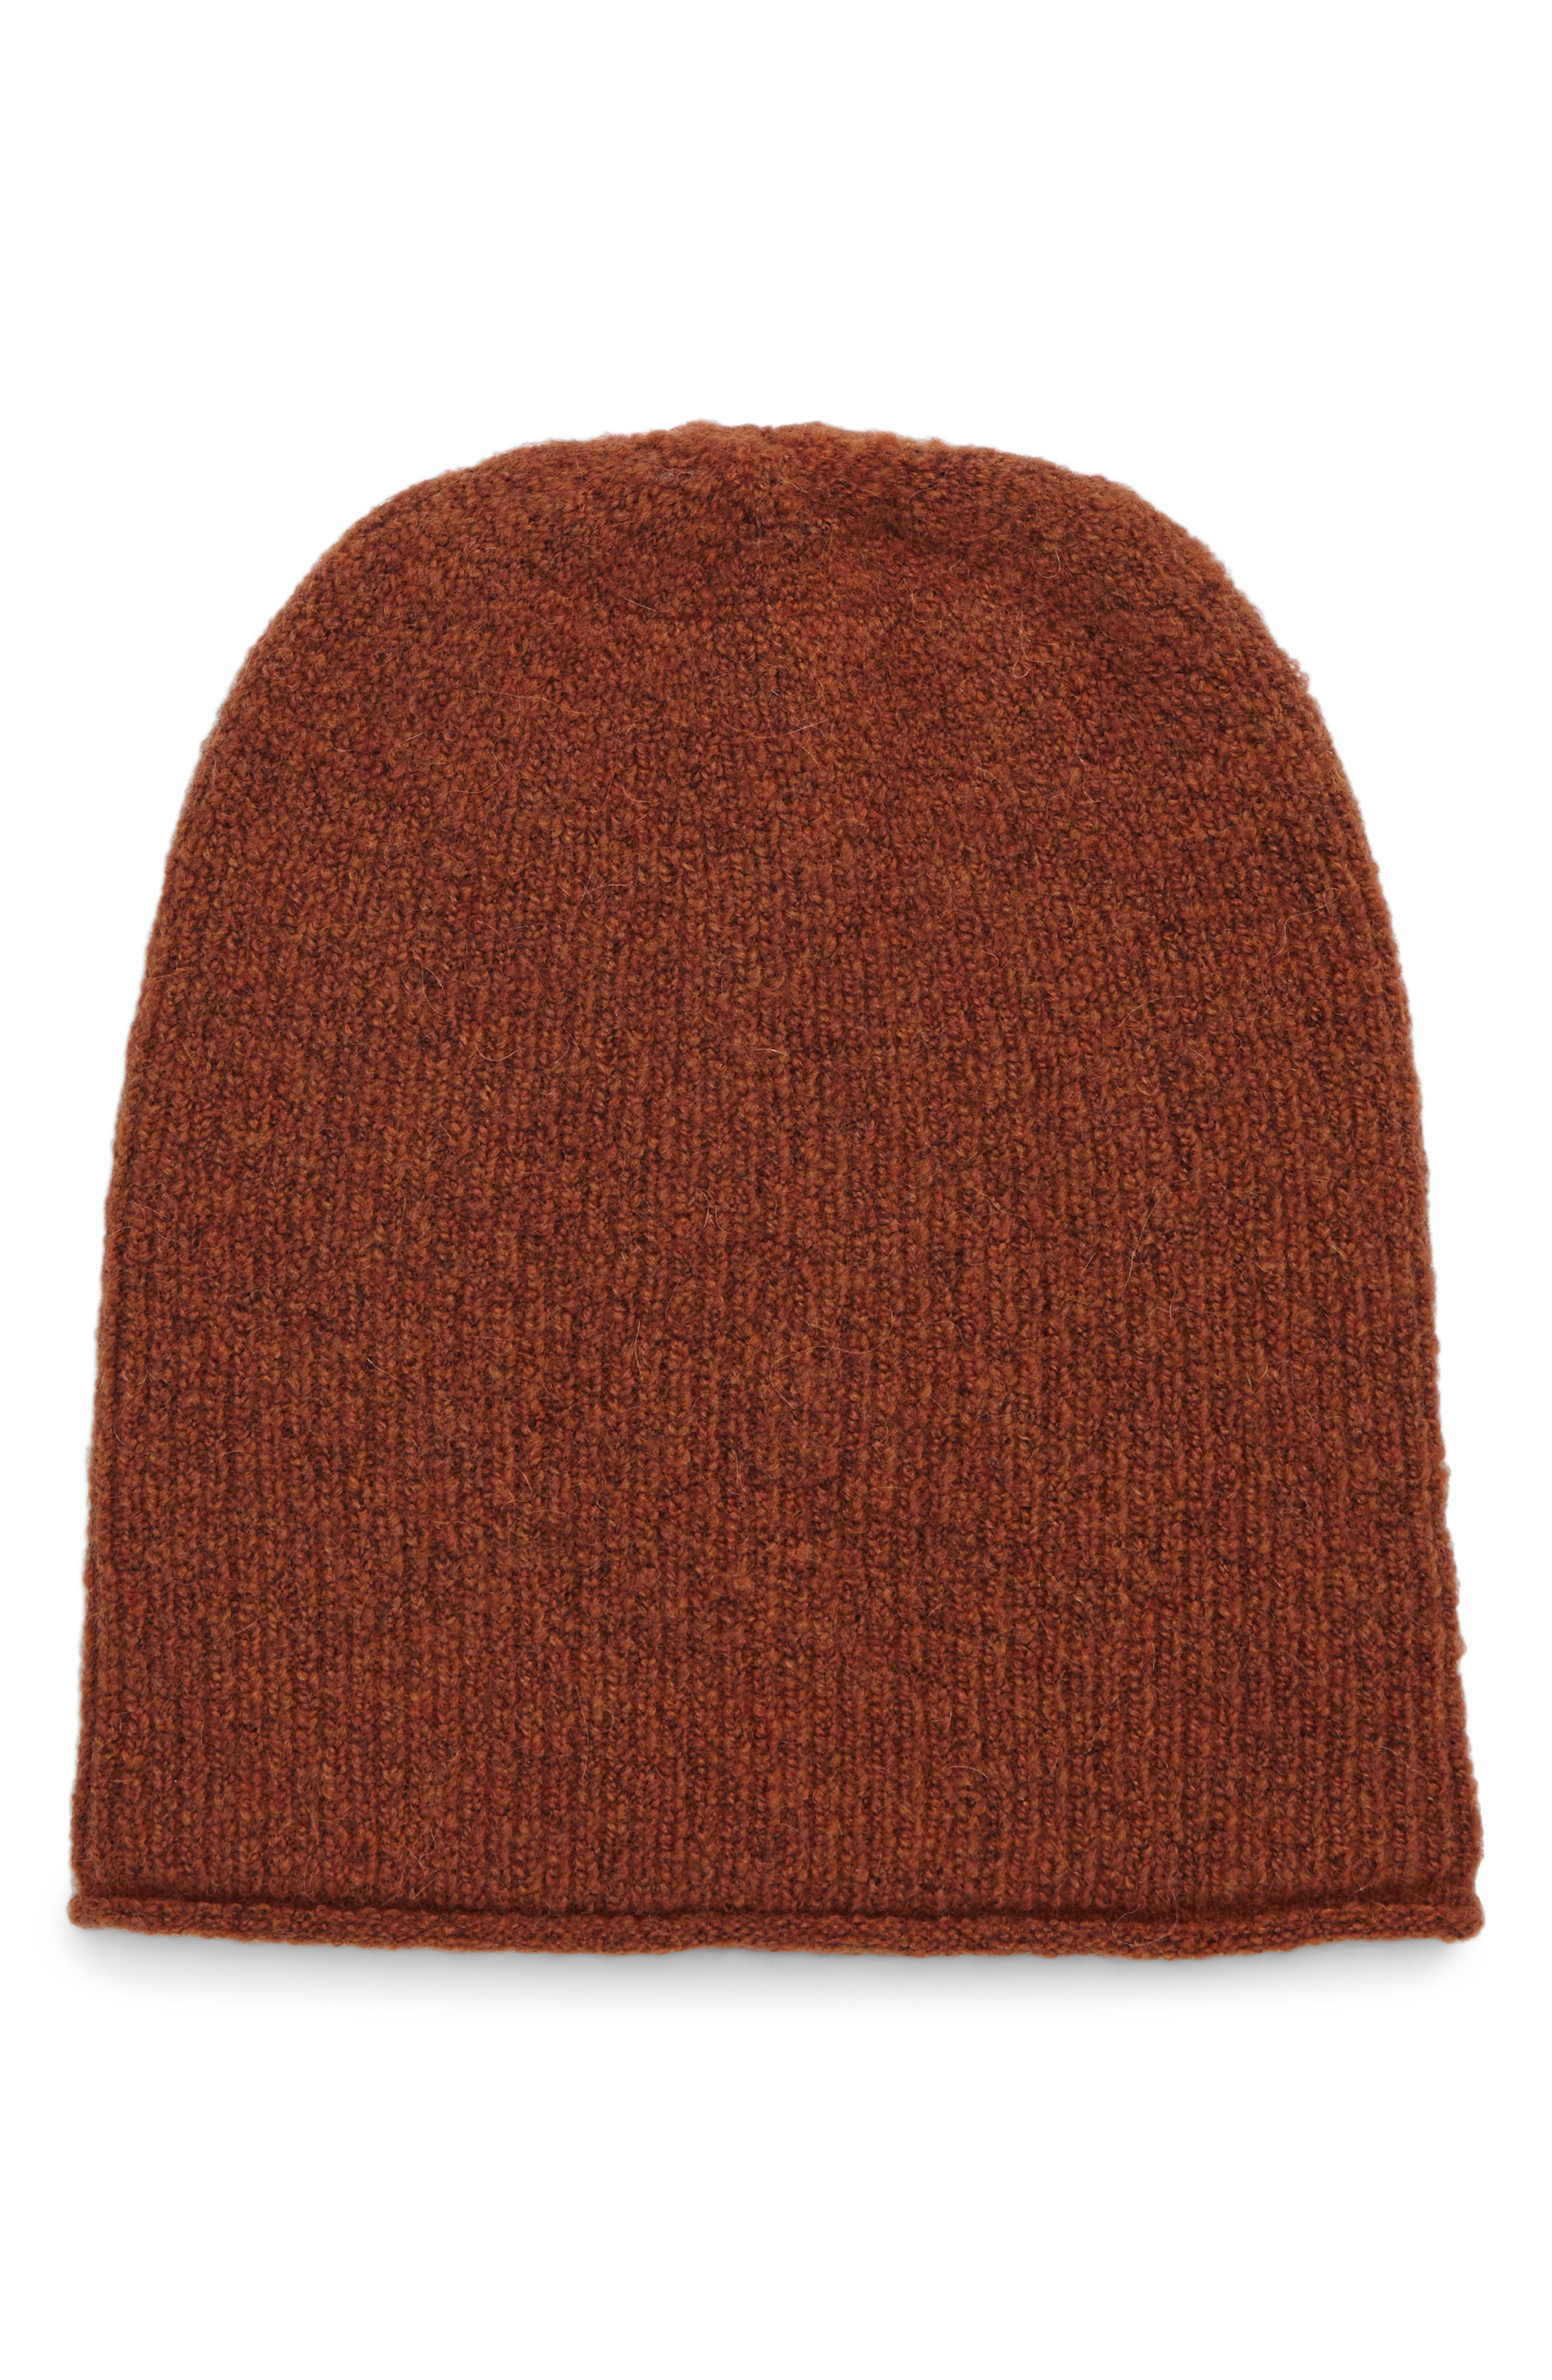 Ryder Beanie,                             Main thumbnail 1, color,                             Heather After Glow